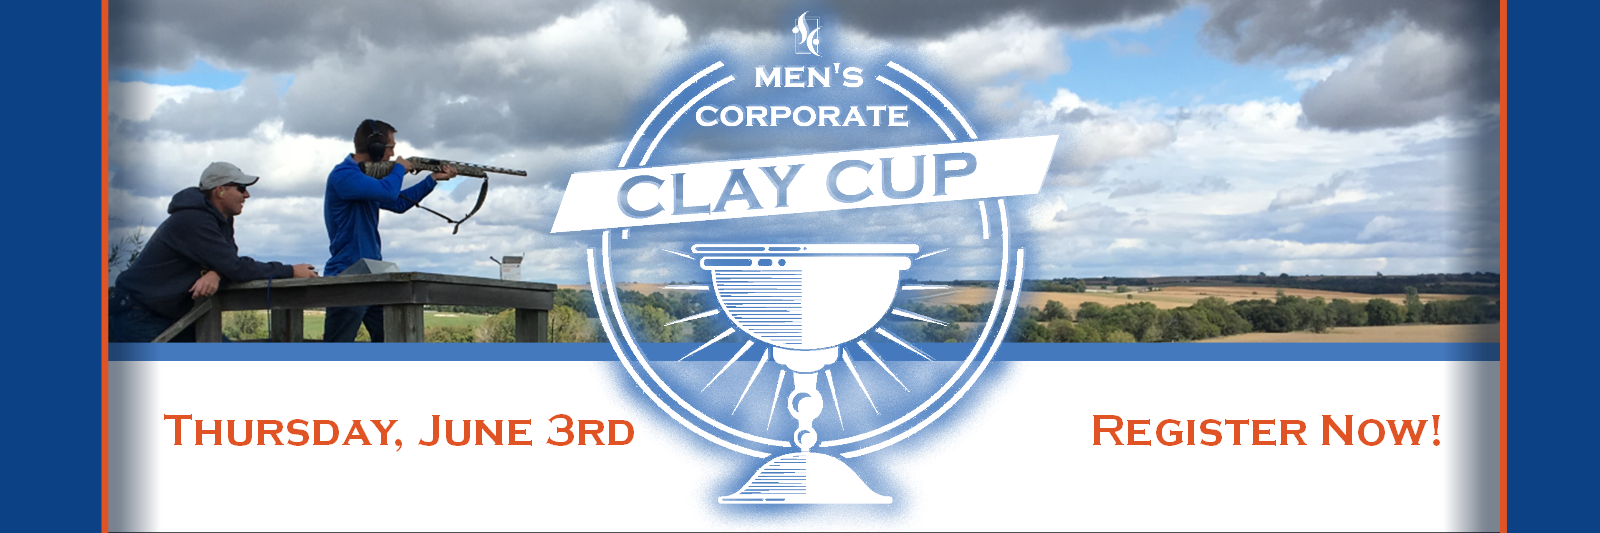 clay-cup.png